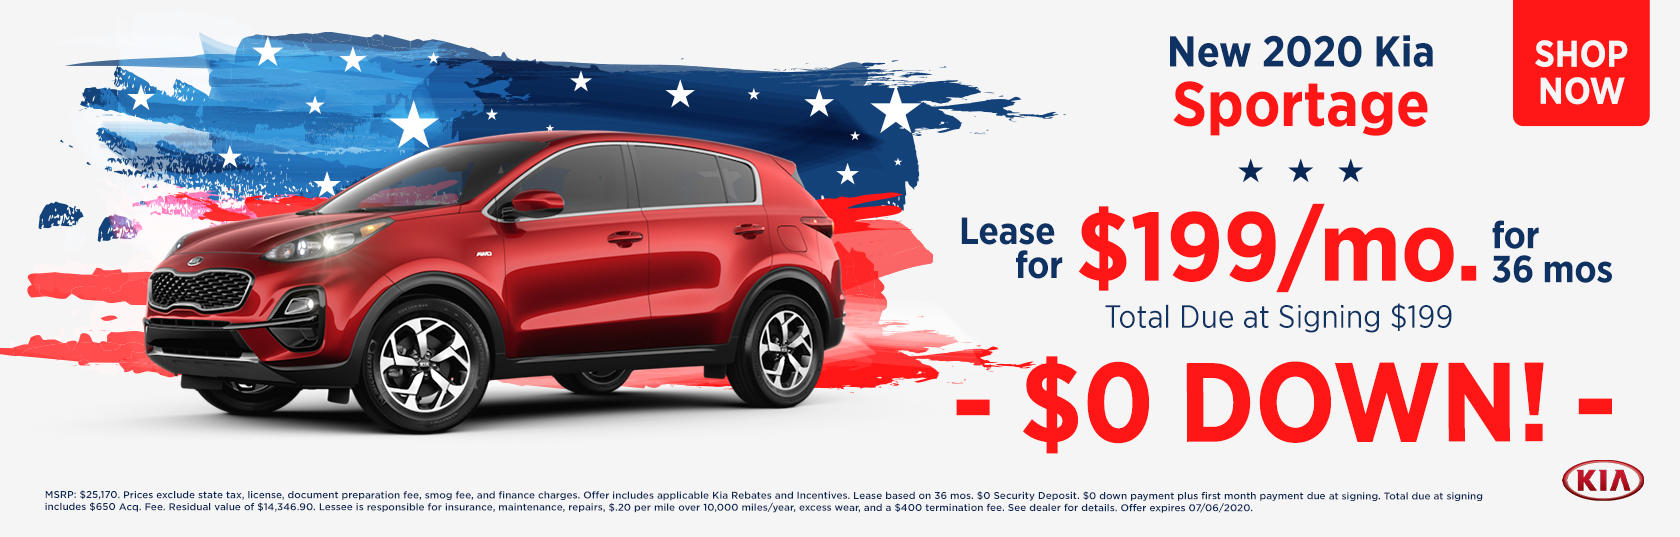 Sportage 4th July Special